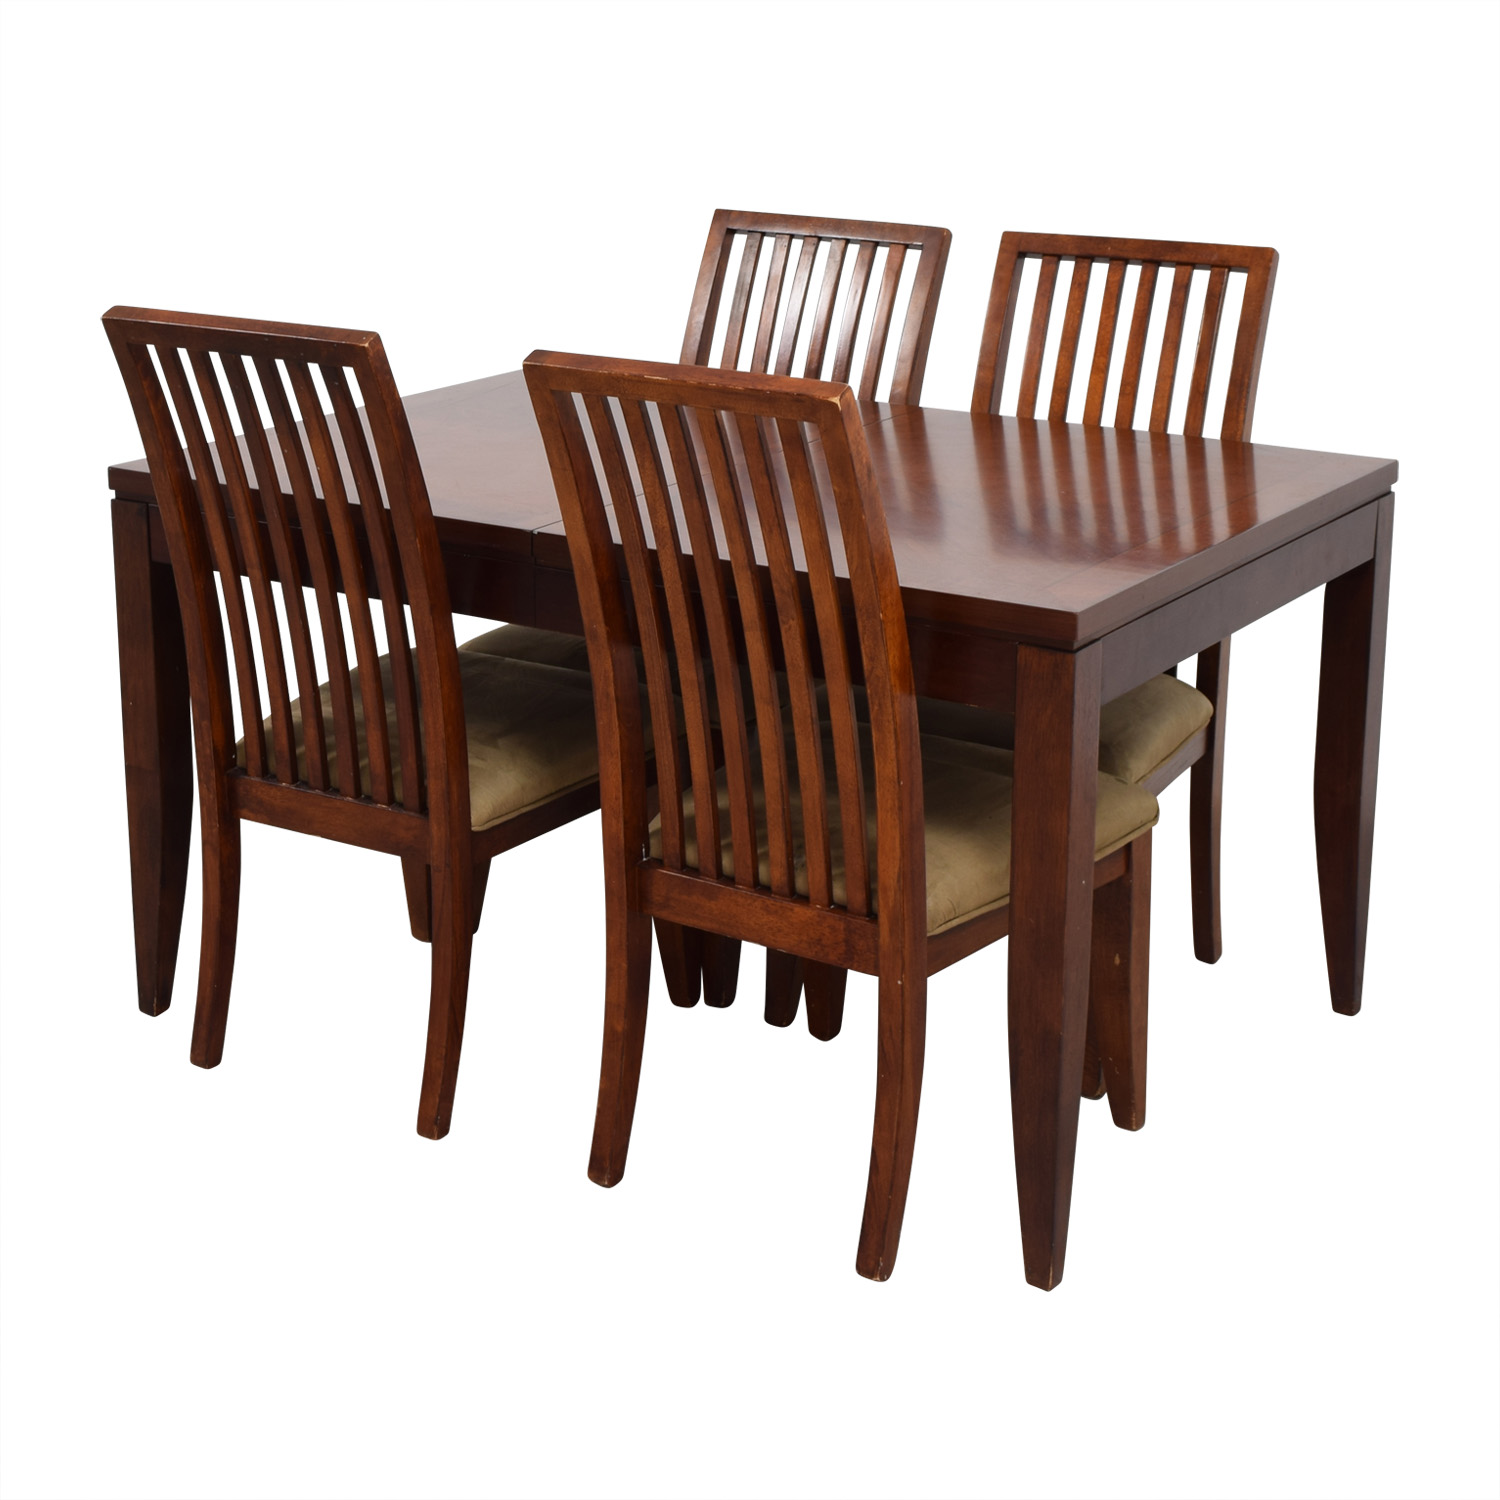 Macys Macys Wood Dining Set with Extendable Leaf and Chairs coupon